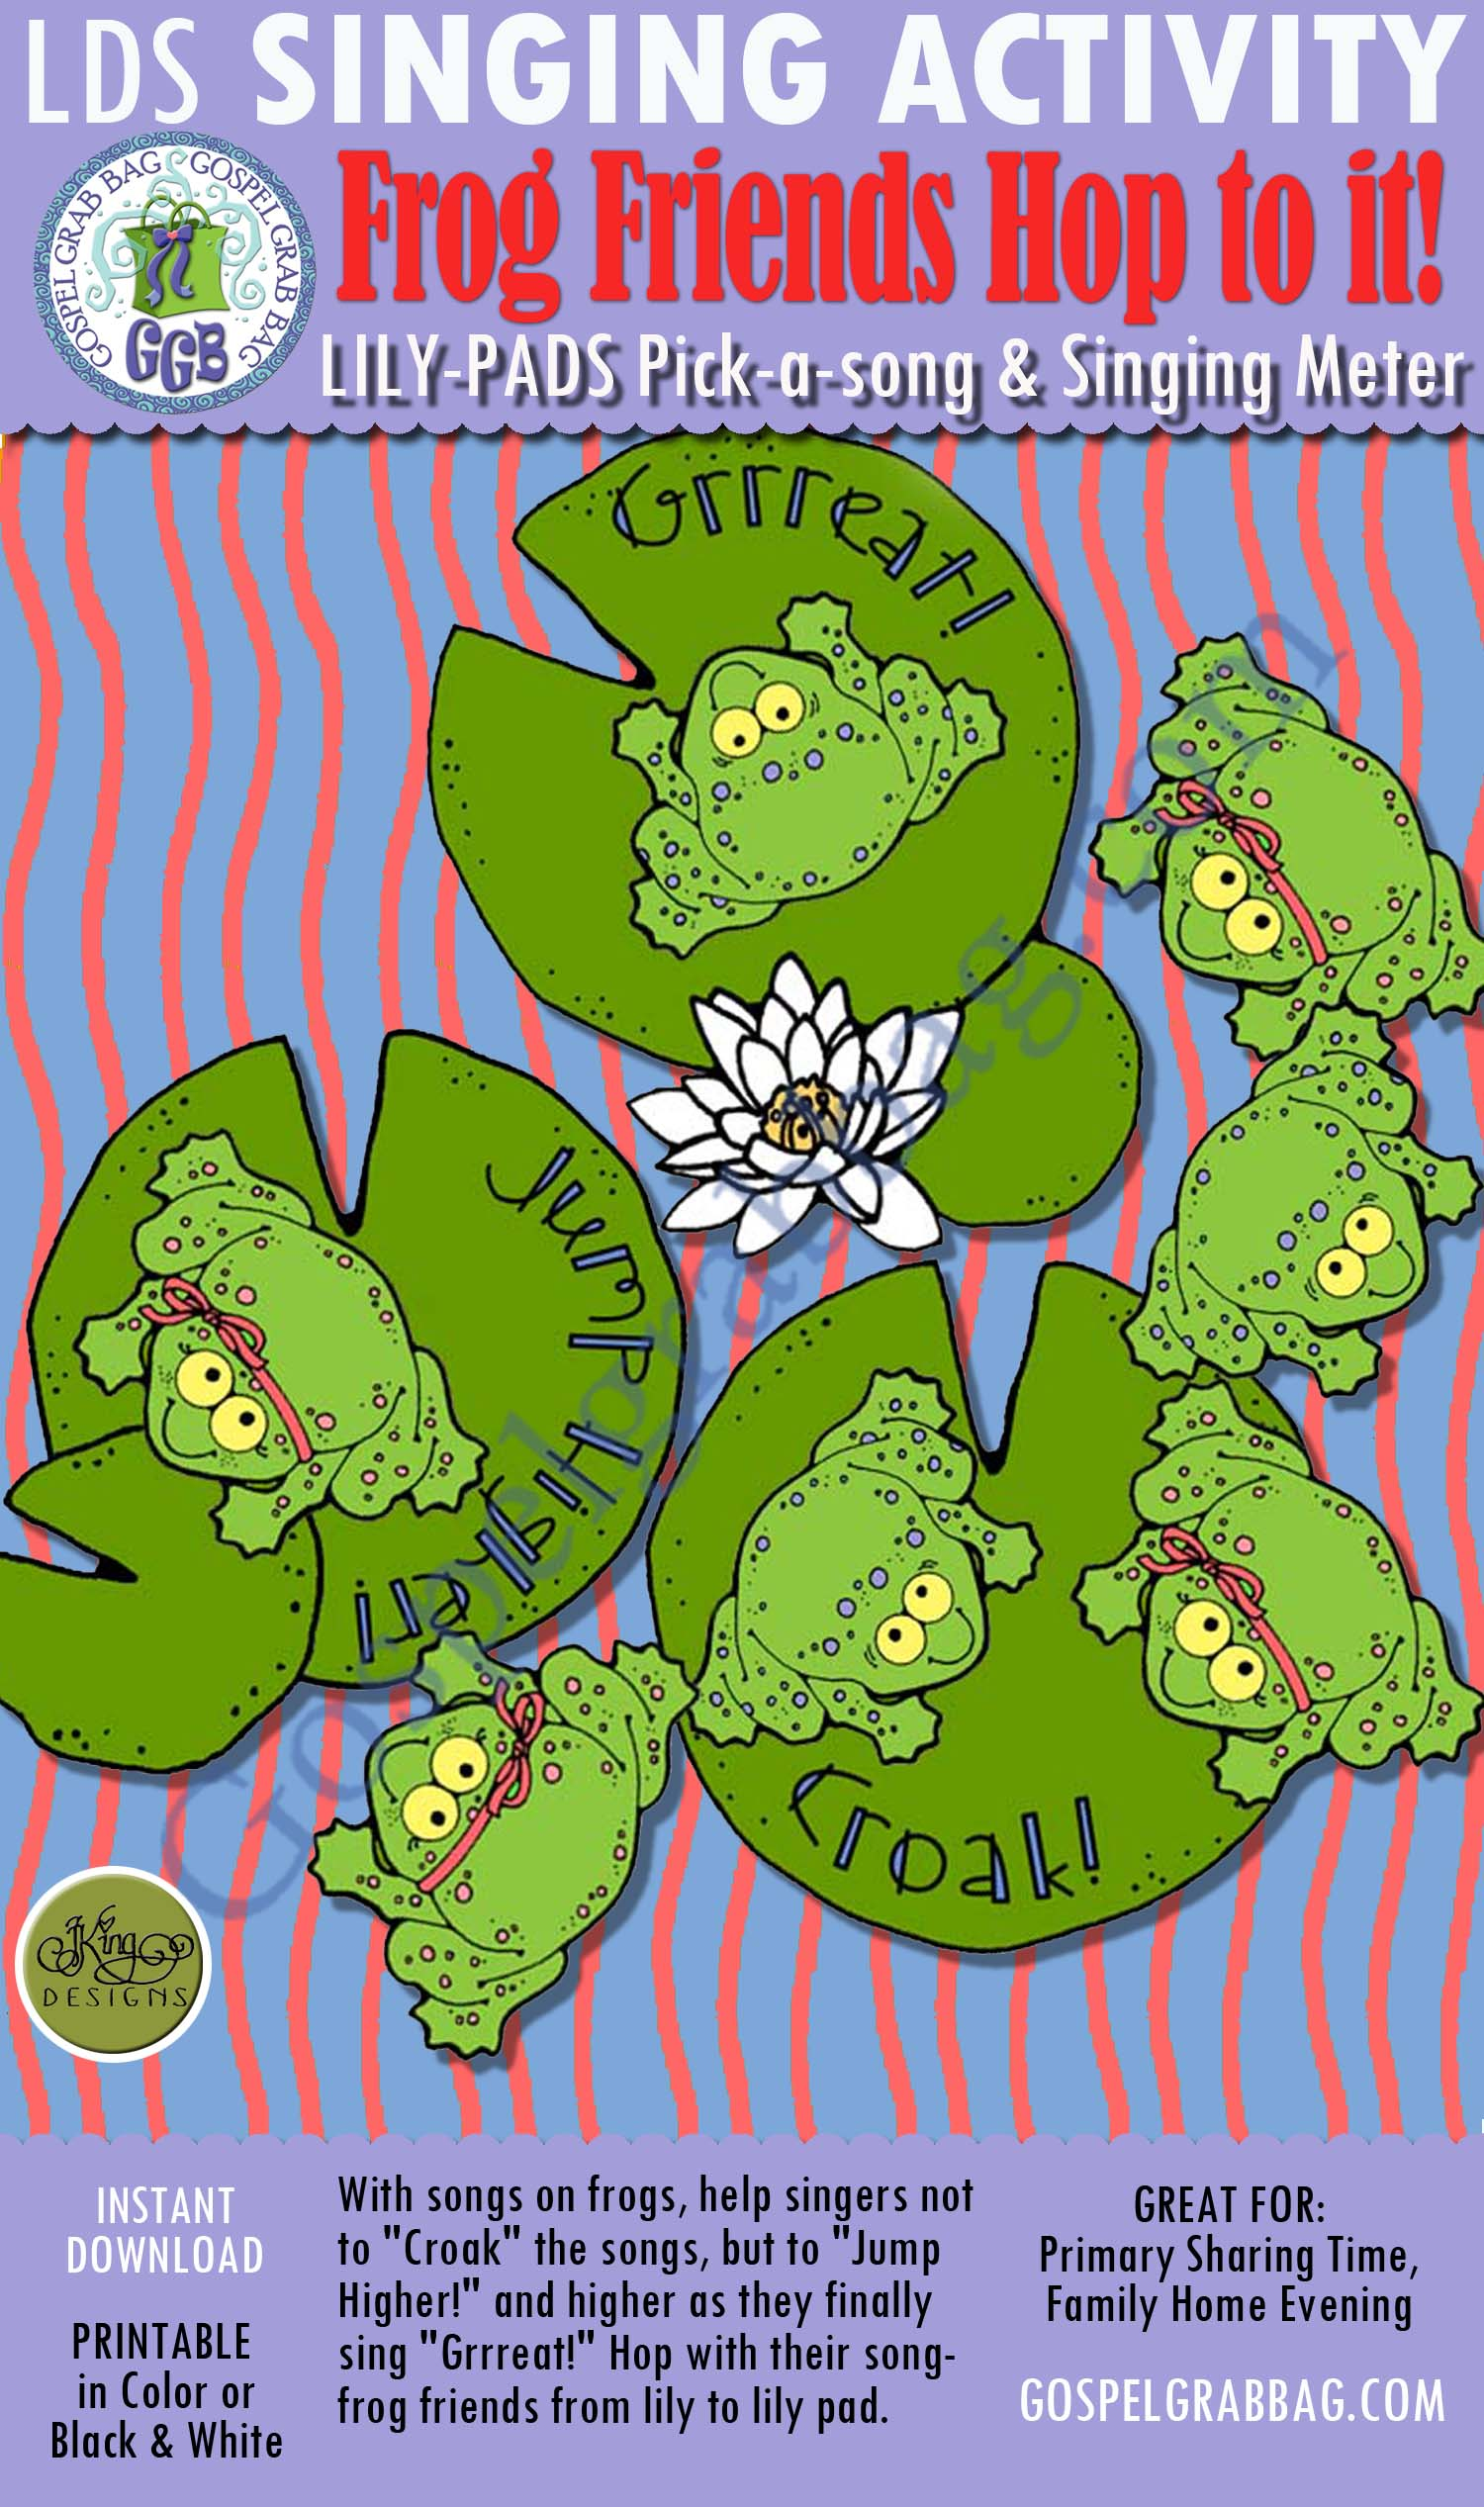 $3.00 FROG FRIENDS HOP TO IT! Lily-pads pick-a-song and singing meter: Primary Music Singing Time Activities to Motivate Children to Sing, download from GospelGrabBag.com